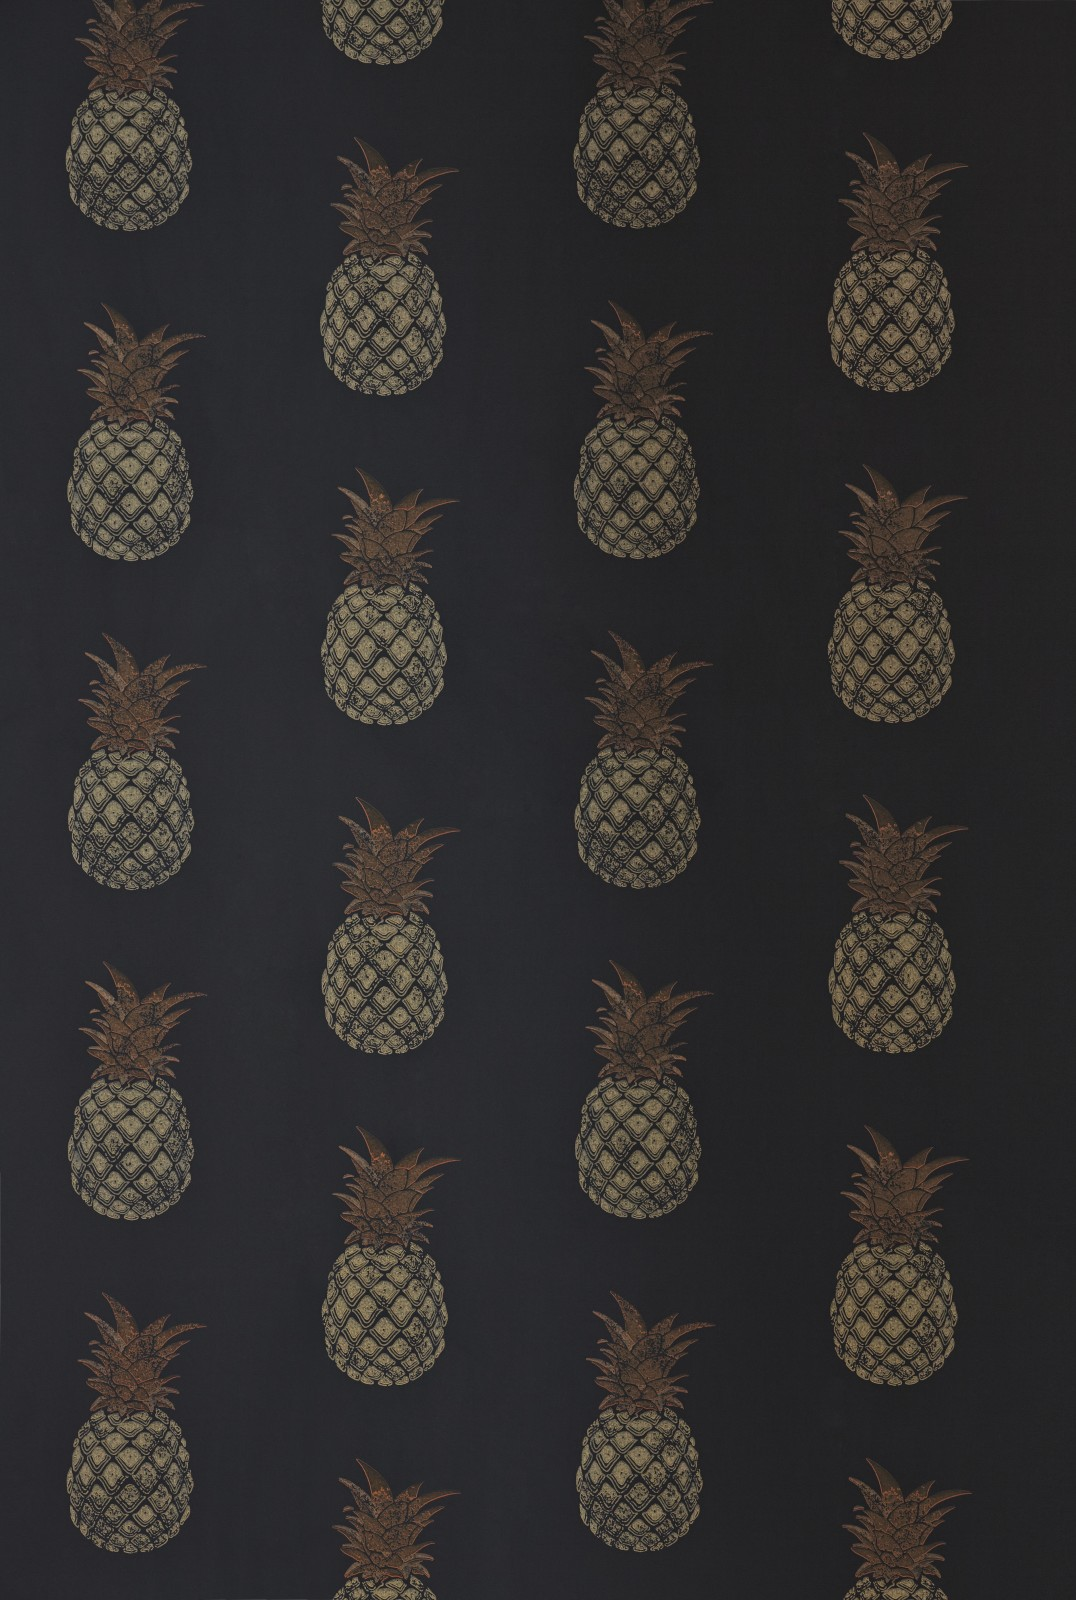 Pineapple Wallpaper Charcoal/Gold